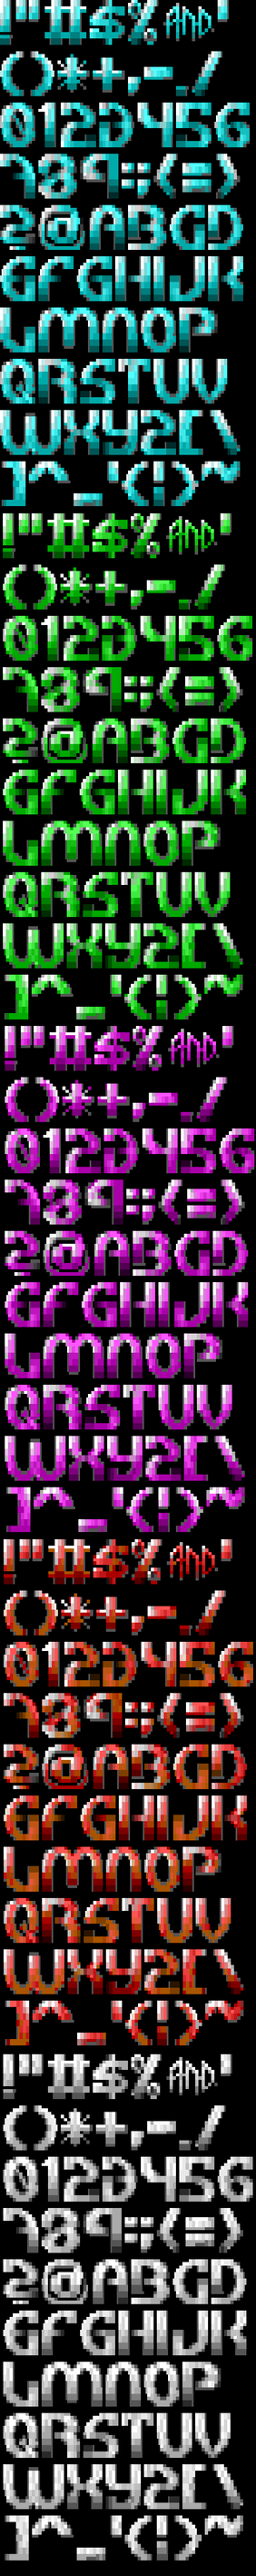 TheDraw TDF ANSI Font - Font 28 by roy-sac